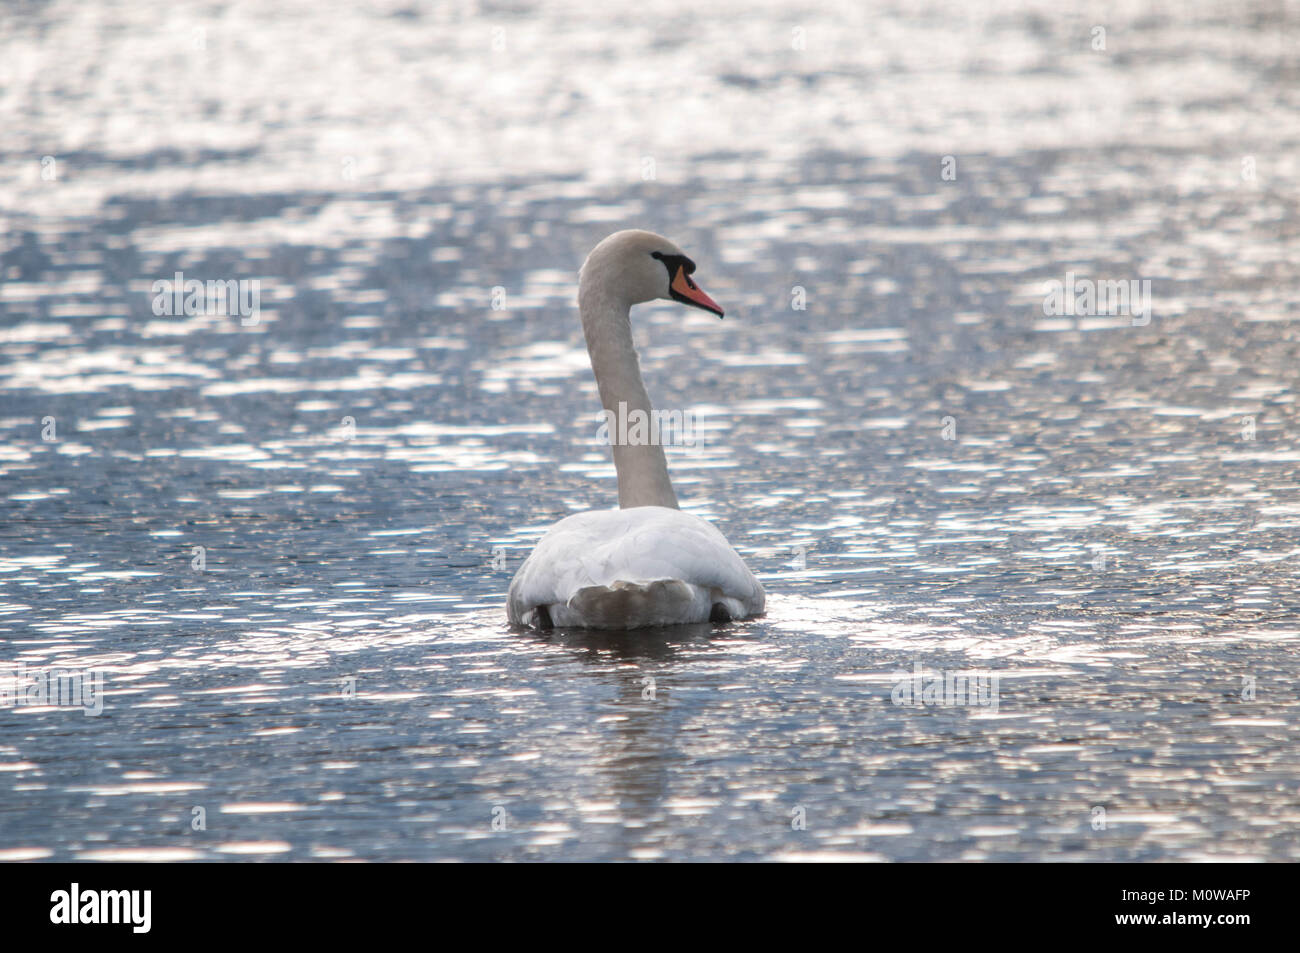 Solitary Swan with Glistening Water - Stock Image